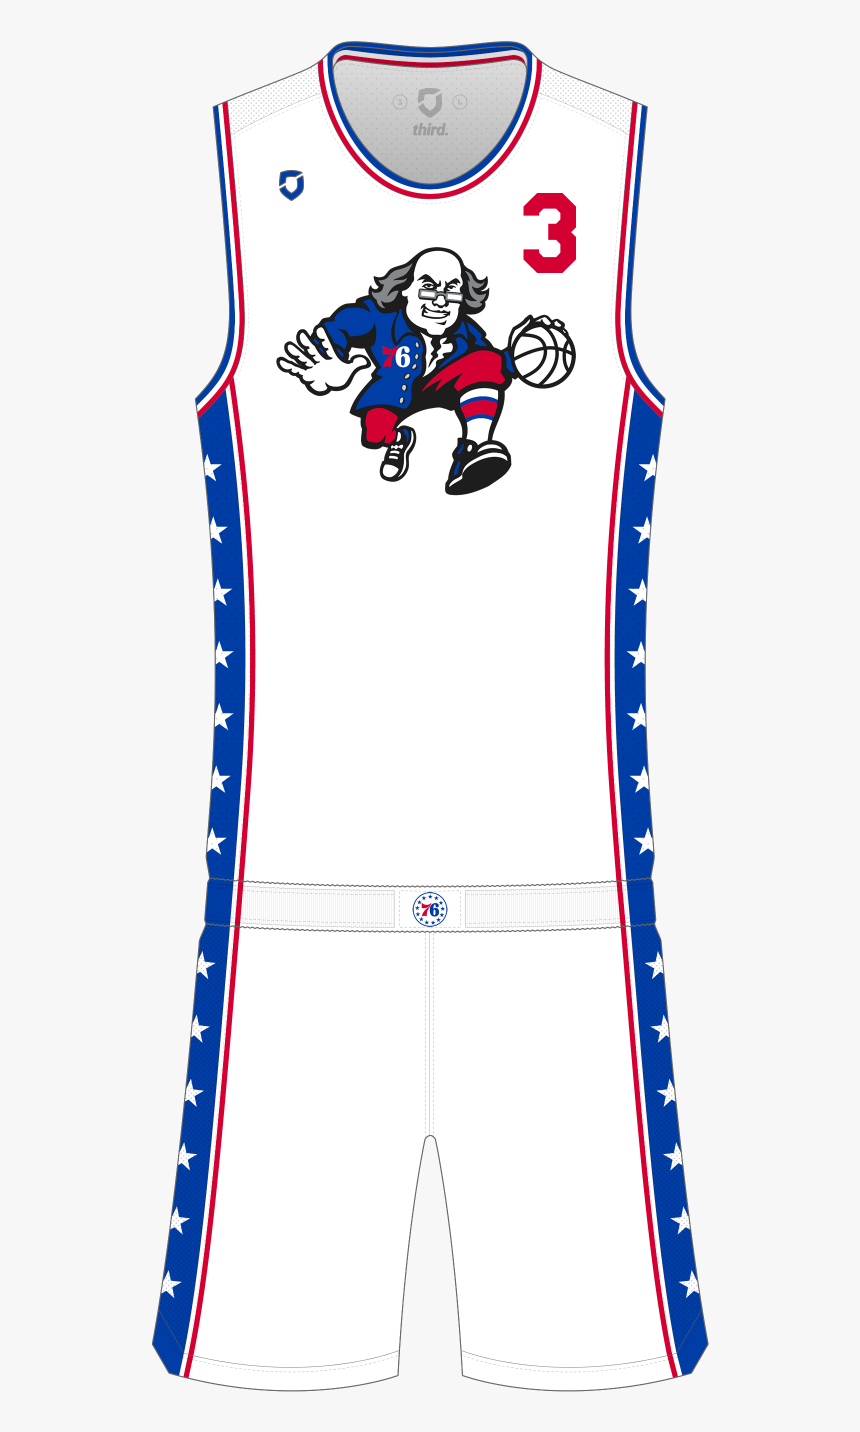 Philadelphia 76ers Alternate - Sixers New, HD Png Download, Free Download